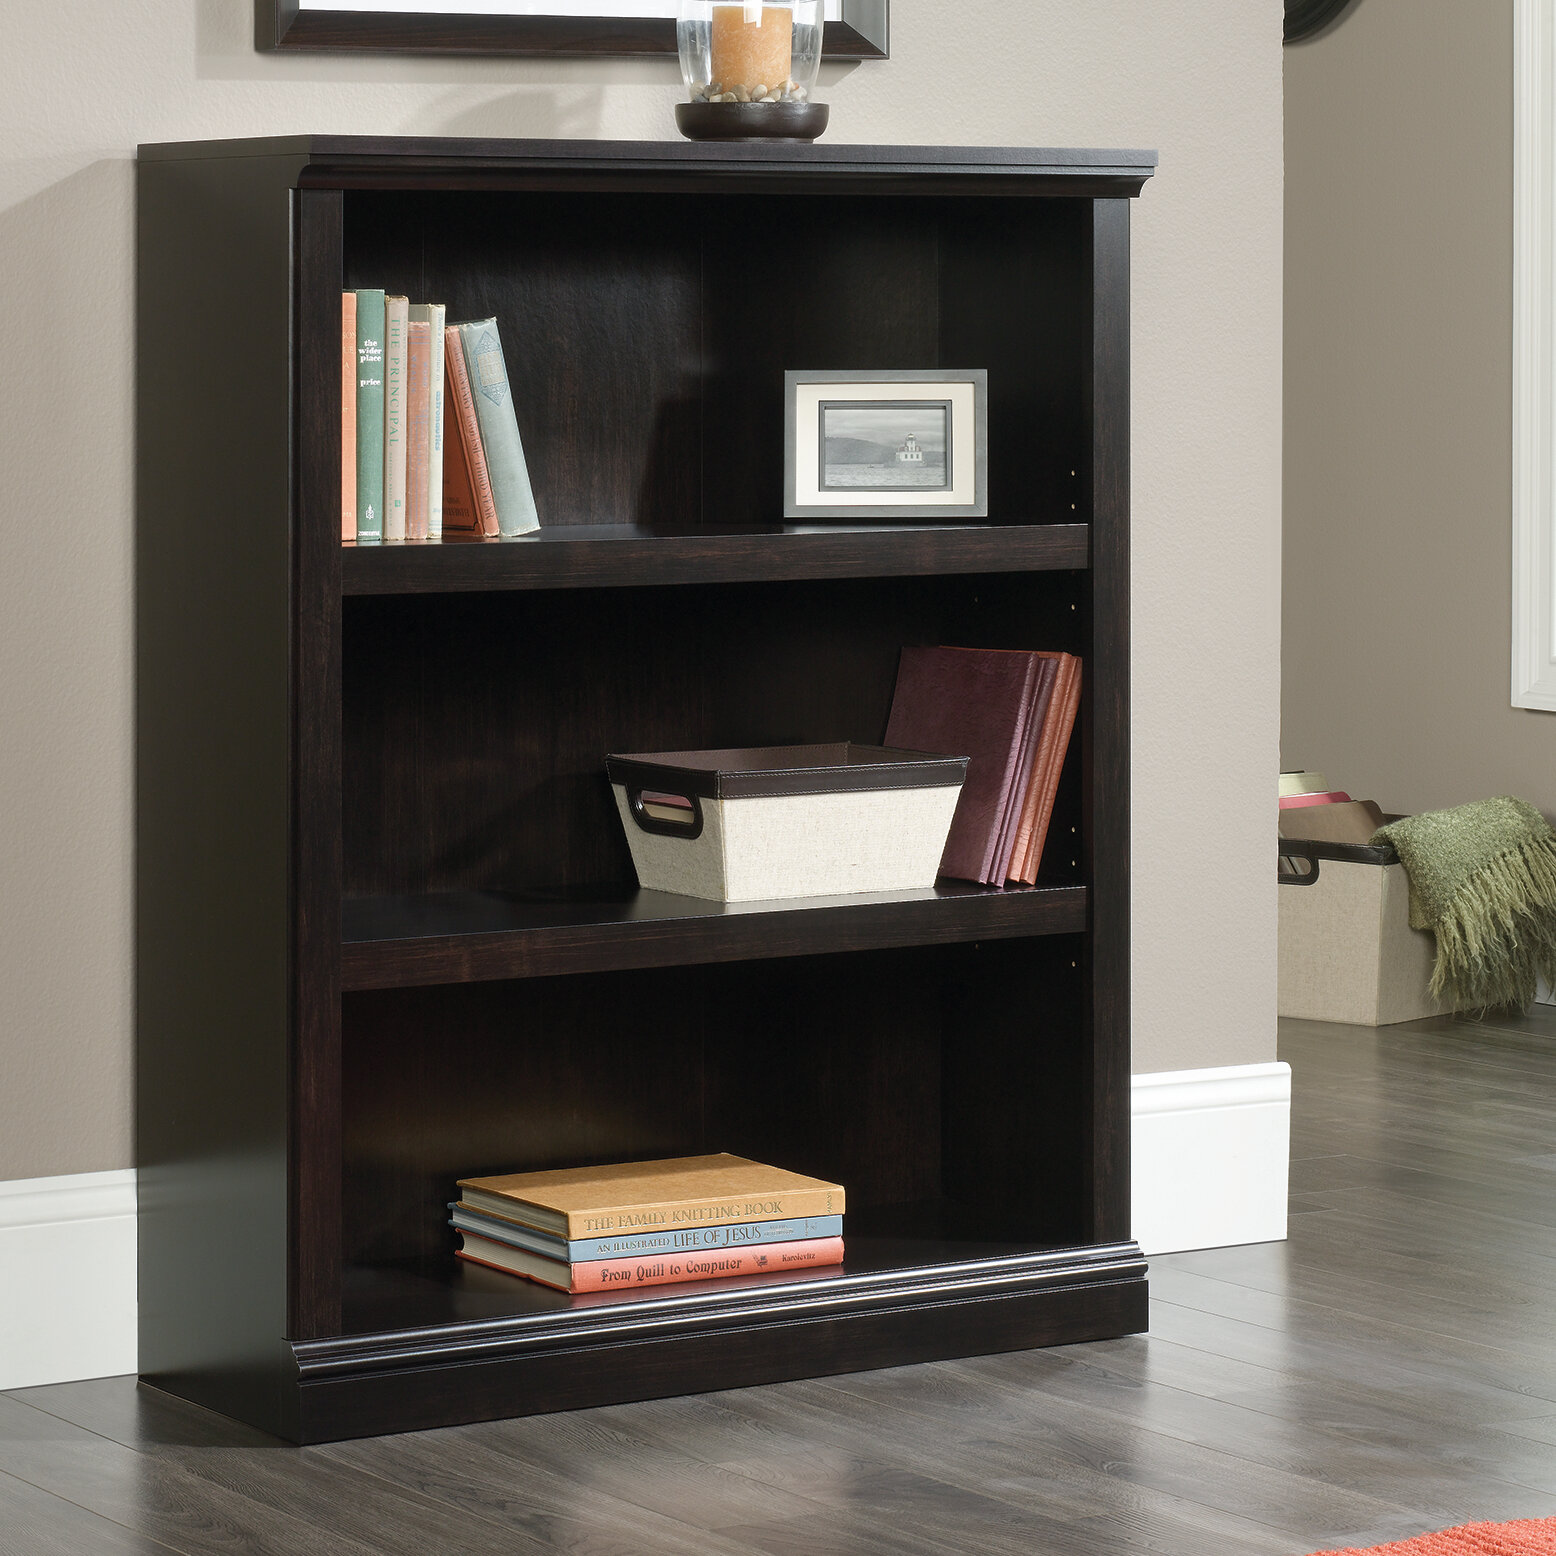 wide is bookcase shelving options shelves cube a standing simple and bookcases bookshelf style inch unit checkered this tall storage inches